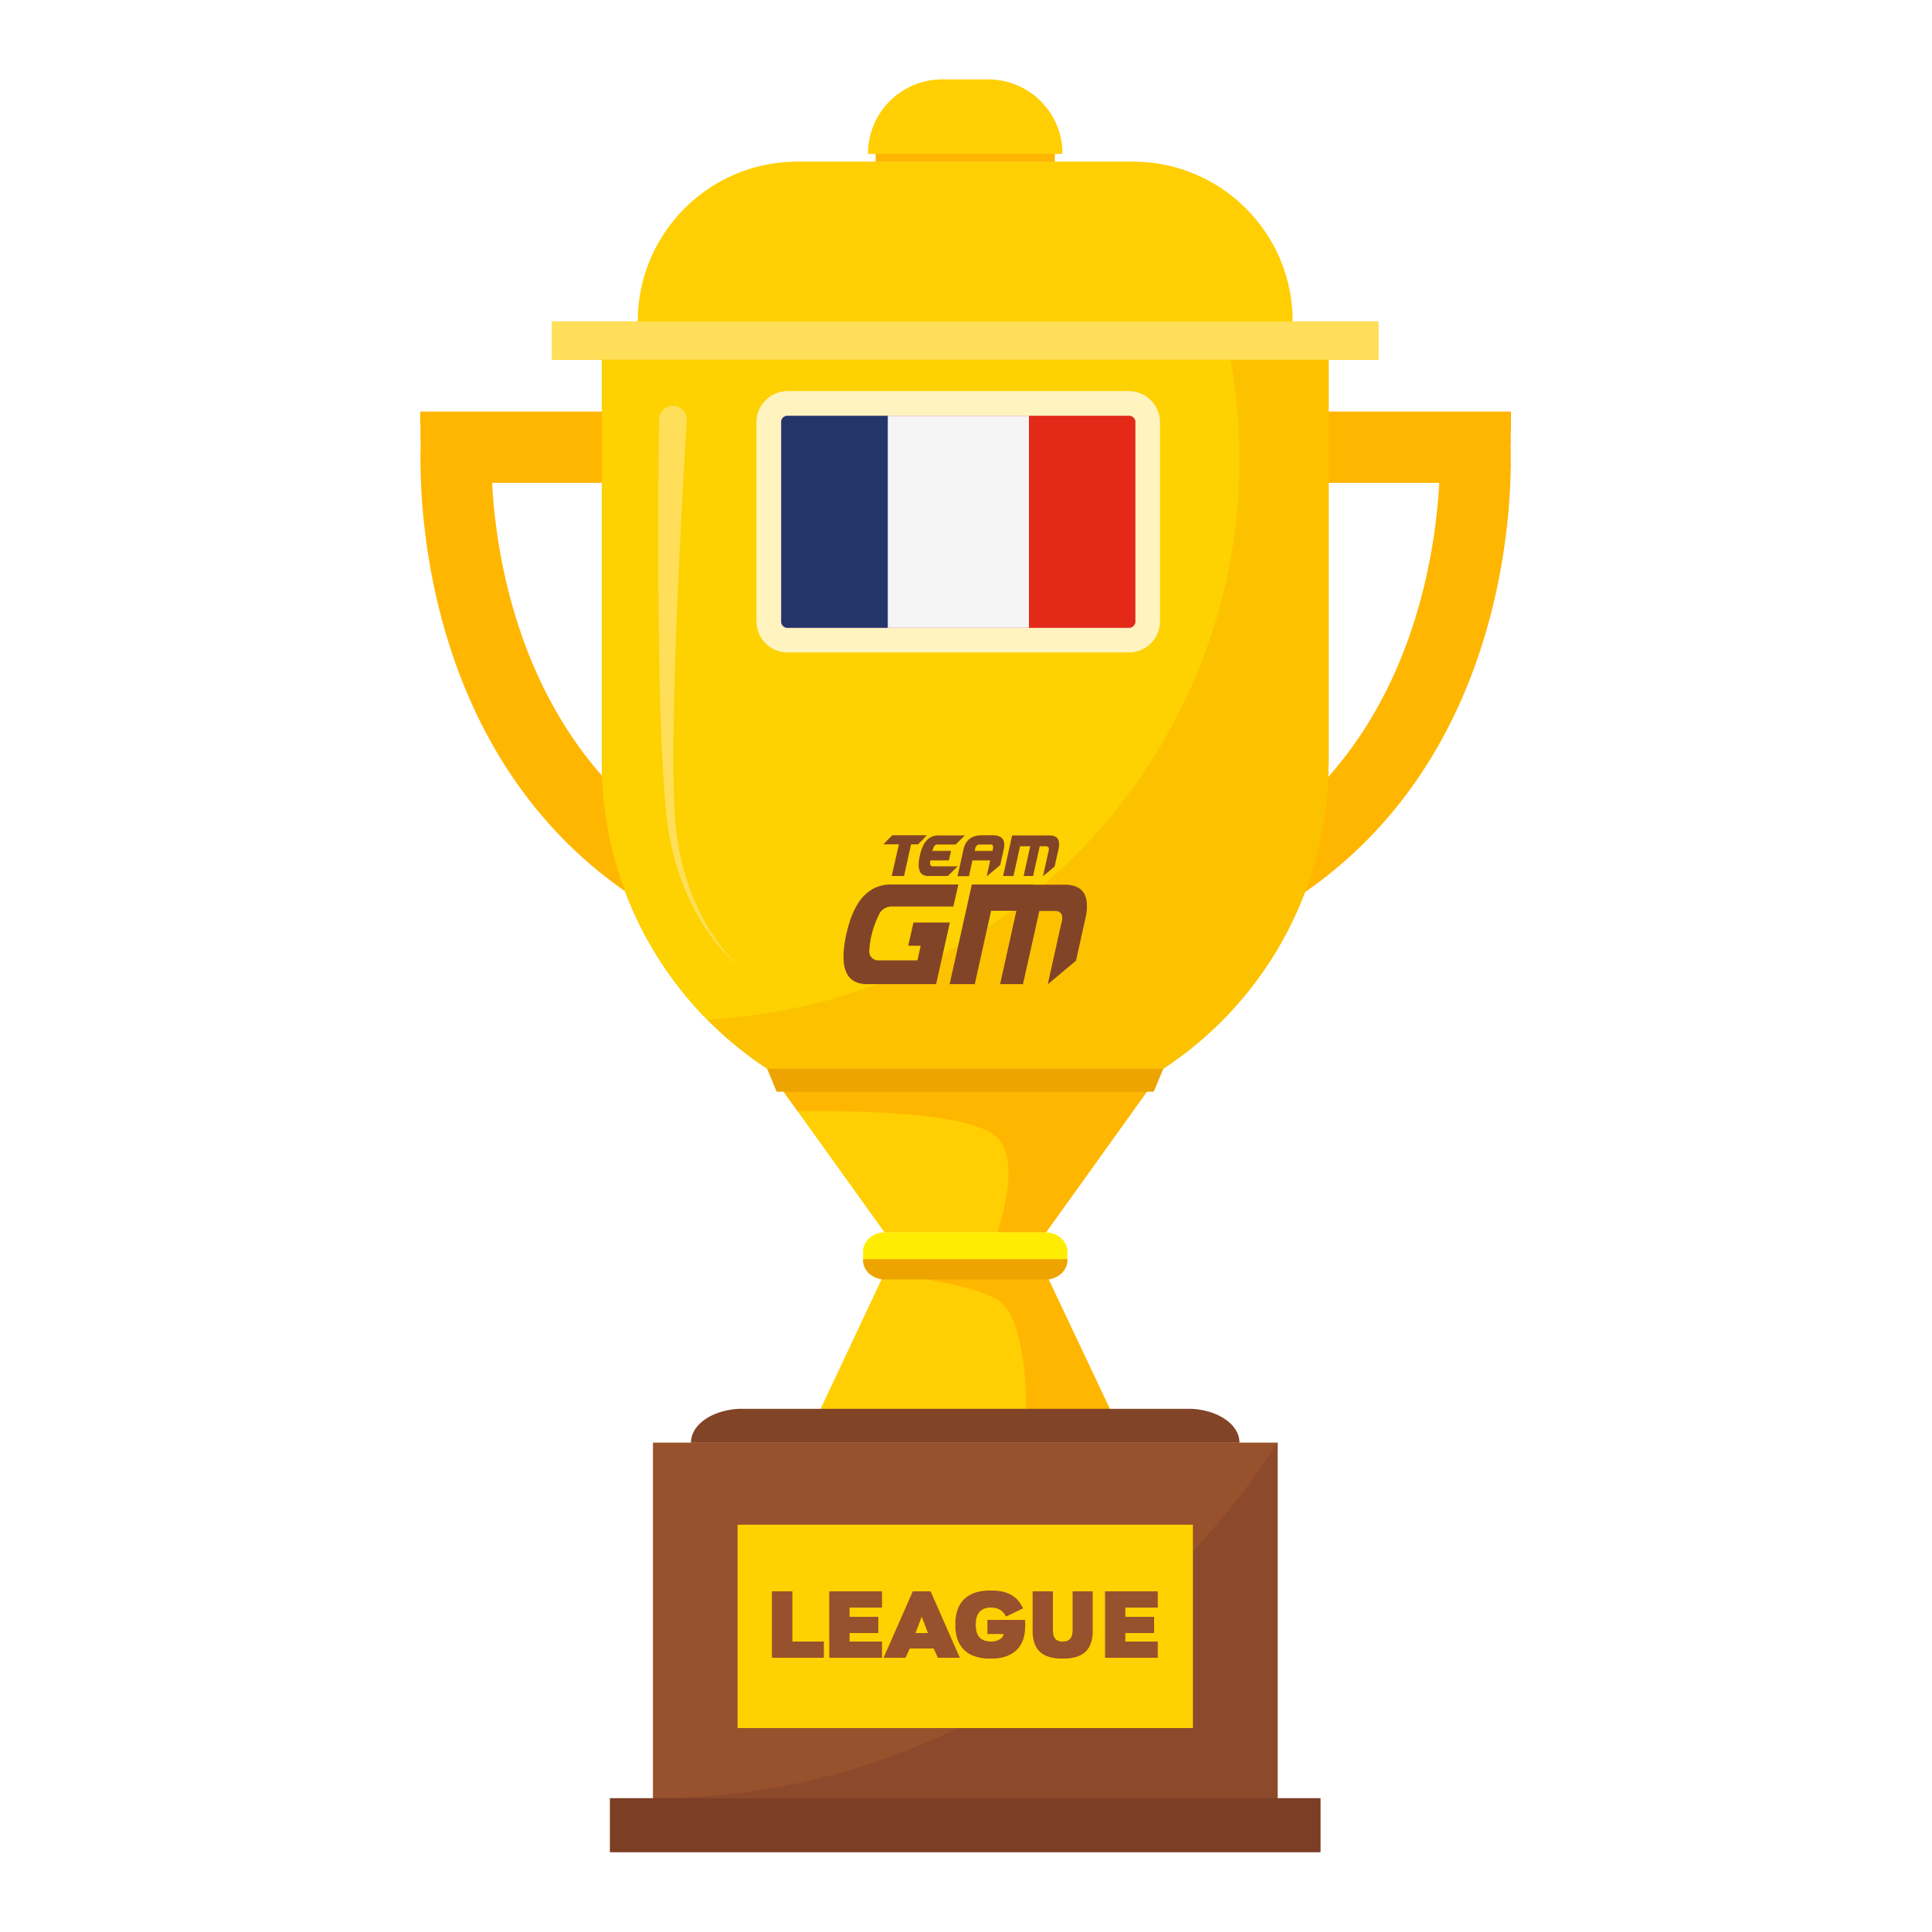 6TH - FRENCH LEAGUE A